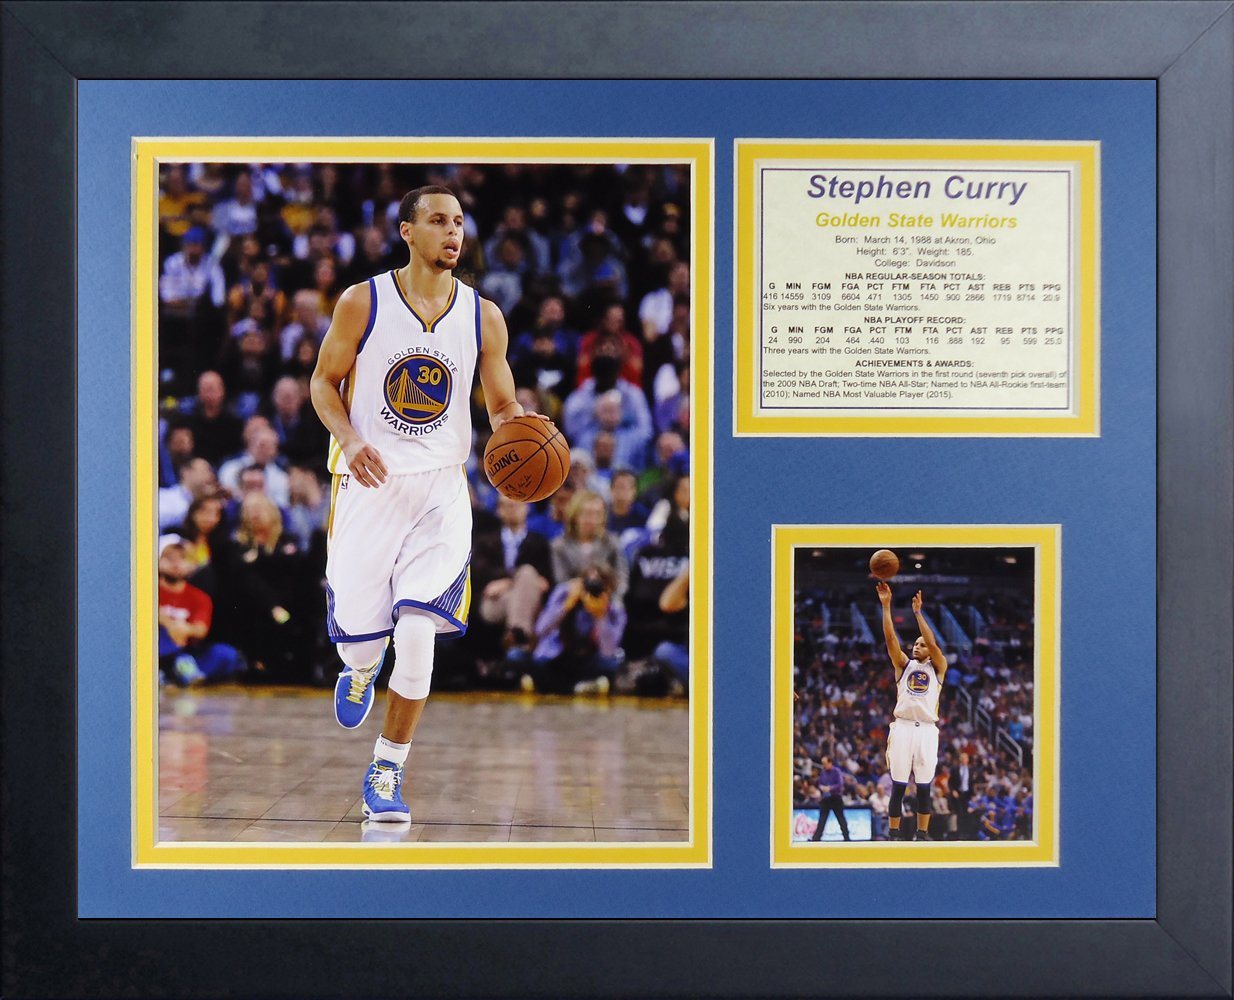 11 x 14 Legends Never Die Steph Curry Golden State Warriors White Collage Photo Frame